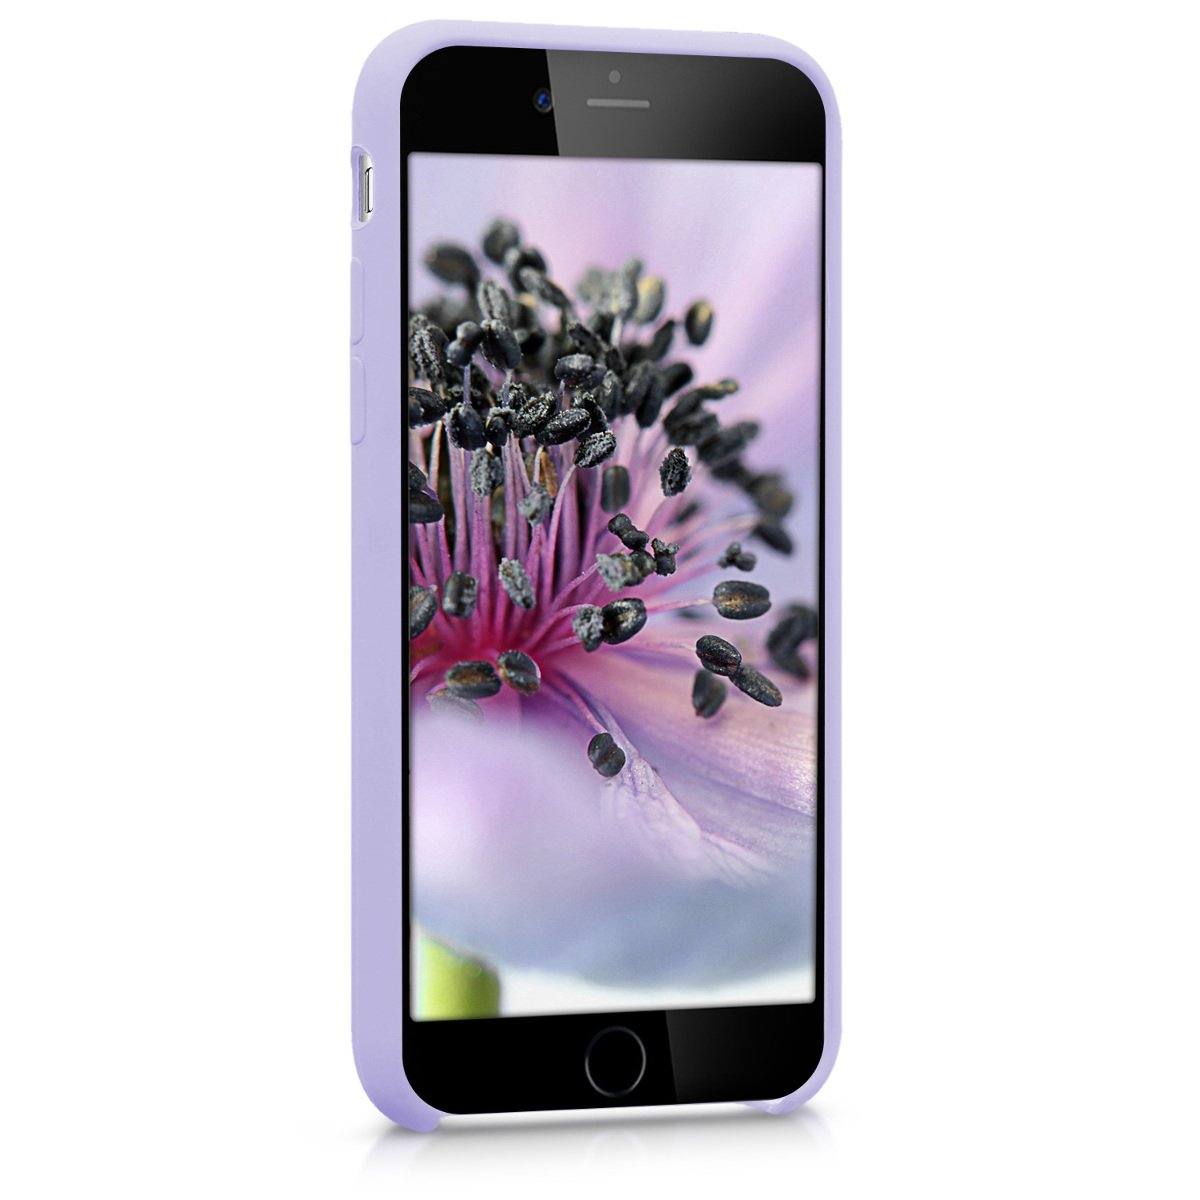 7be7abe989e Amazon.com  kwmobile TPU Silicone Case for Apple iPhone 6   6S - Soft  Flexible Rubber Protective Cover - Lavender  Cell Phones   Accessories